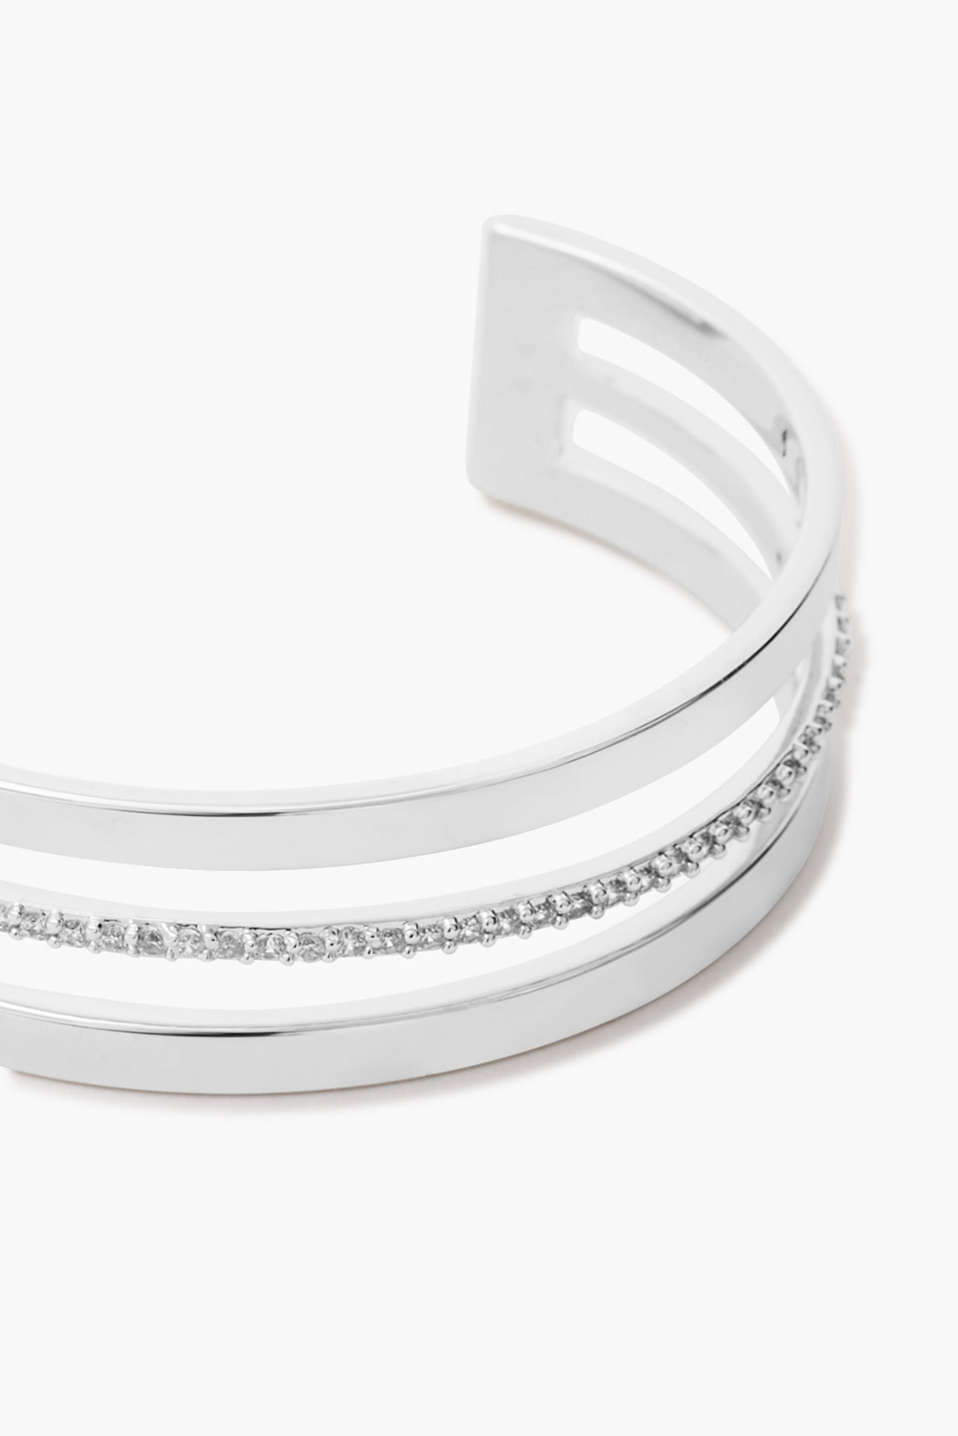 Open bangle with a white stone trim, approx. 18 mm wide